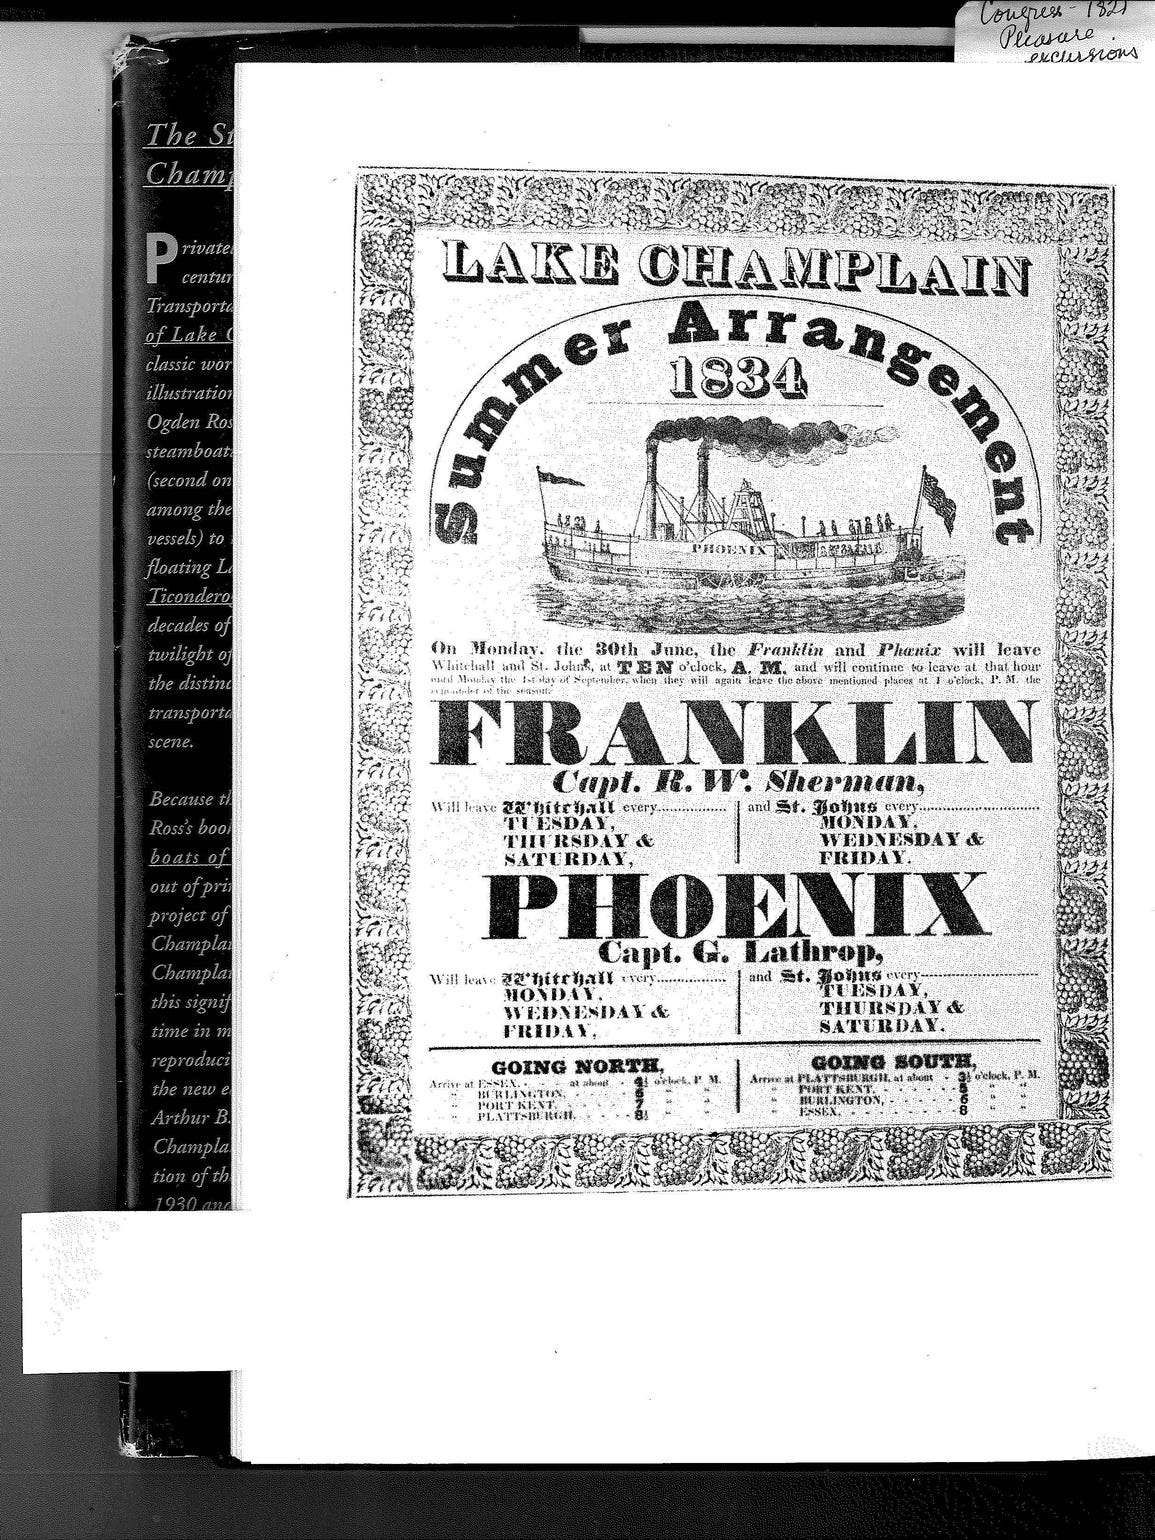 A broadside poster from 1834 showing the Franklin and